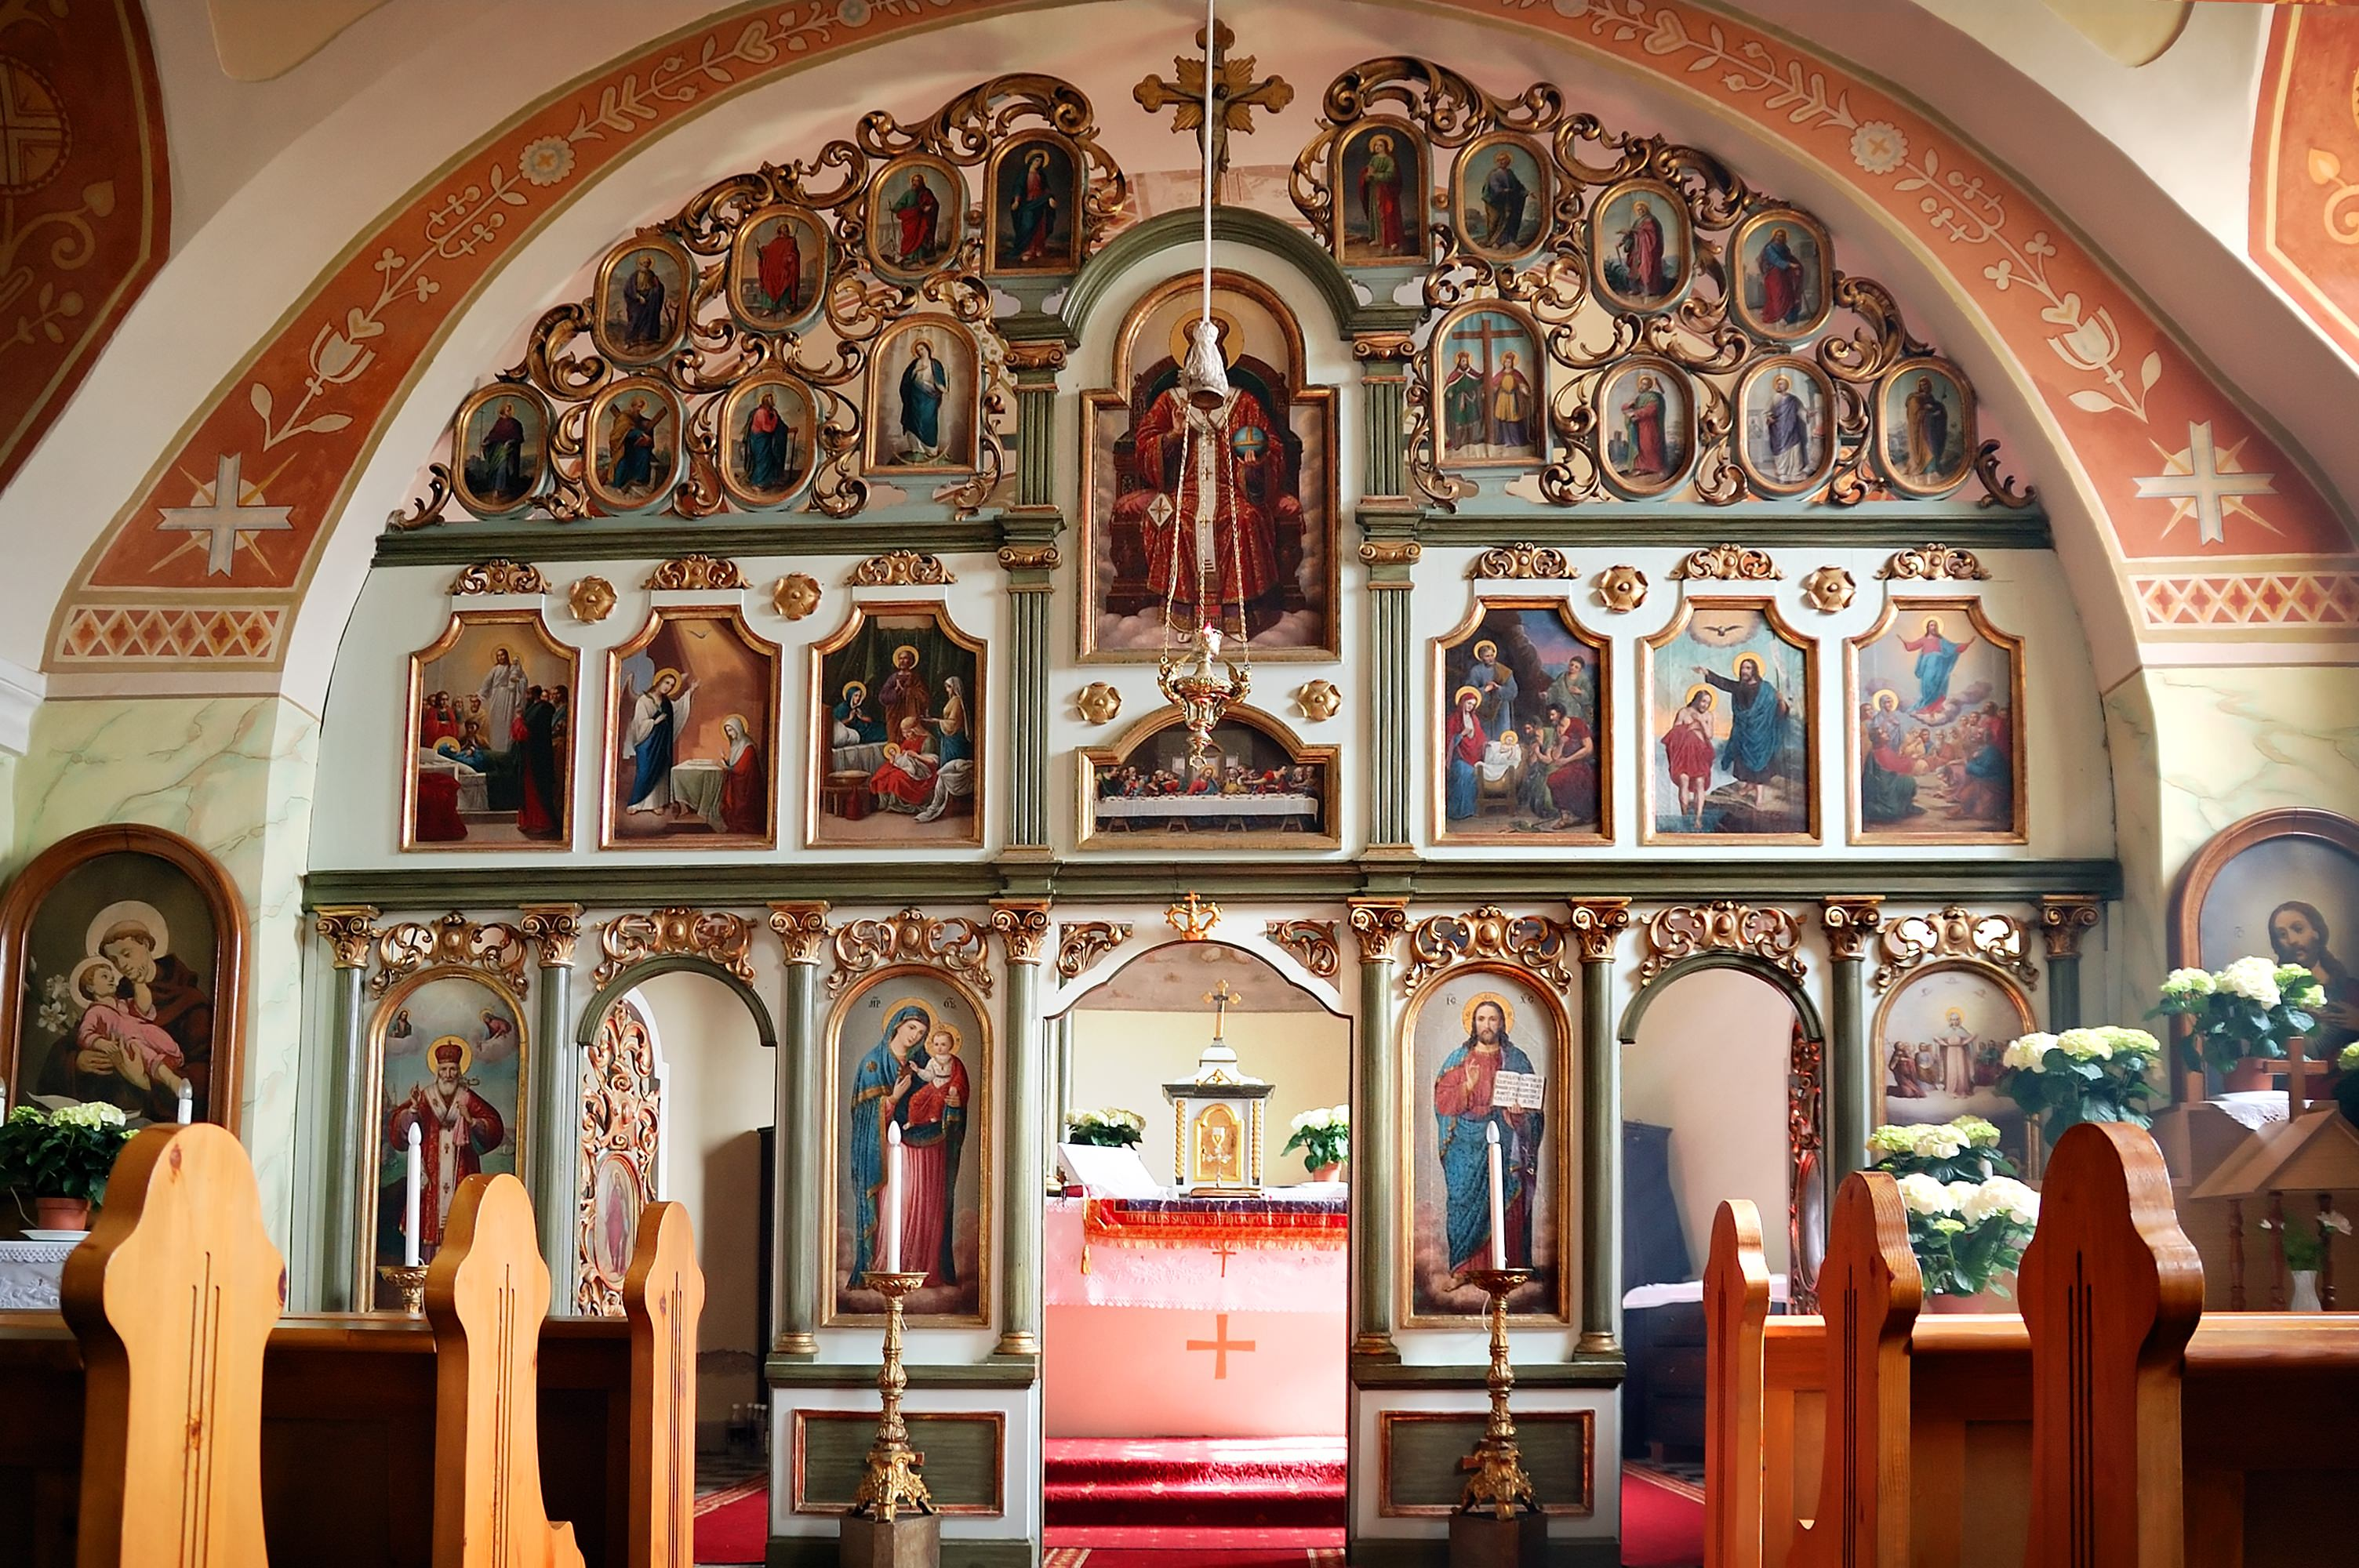 Orthodox church inside, with the rich decorated altar screen.